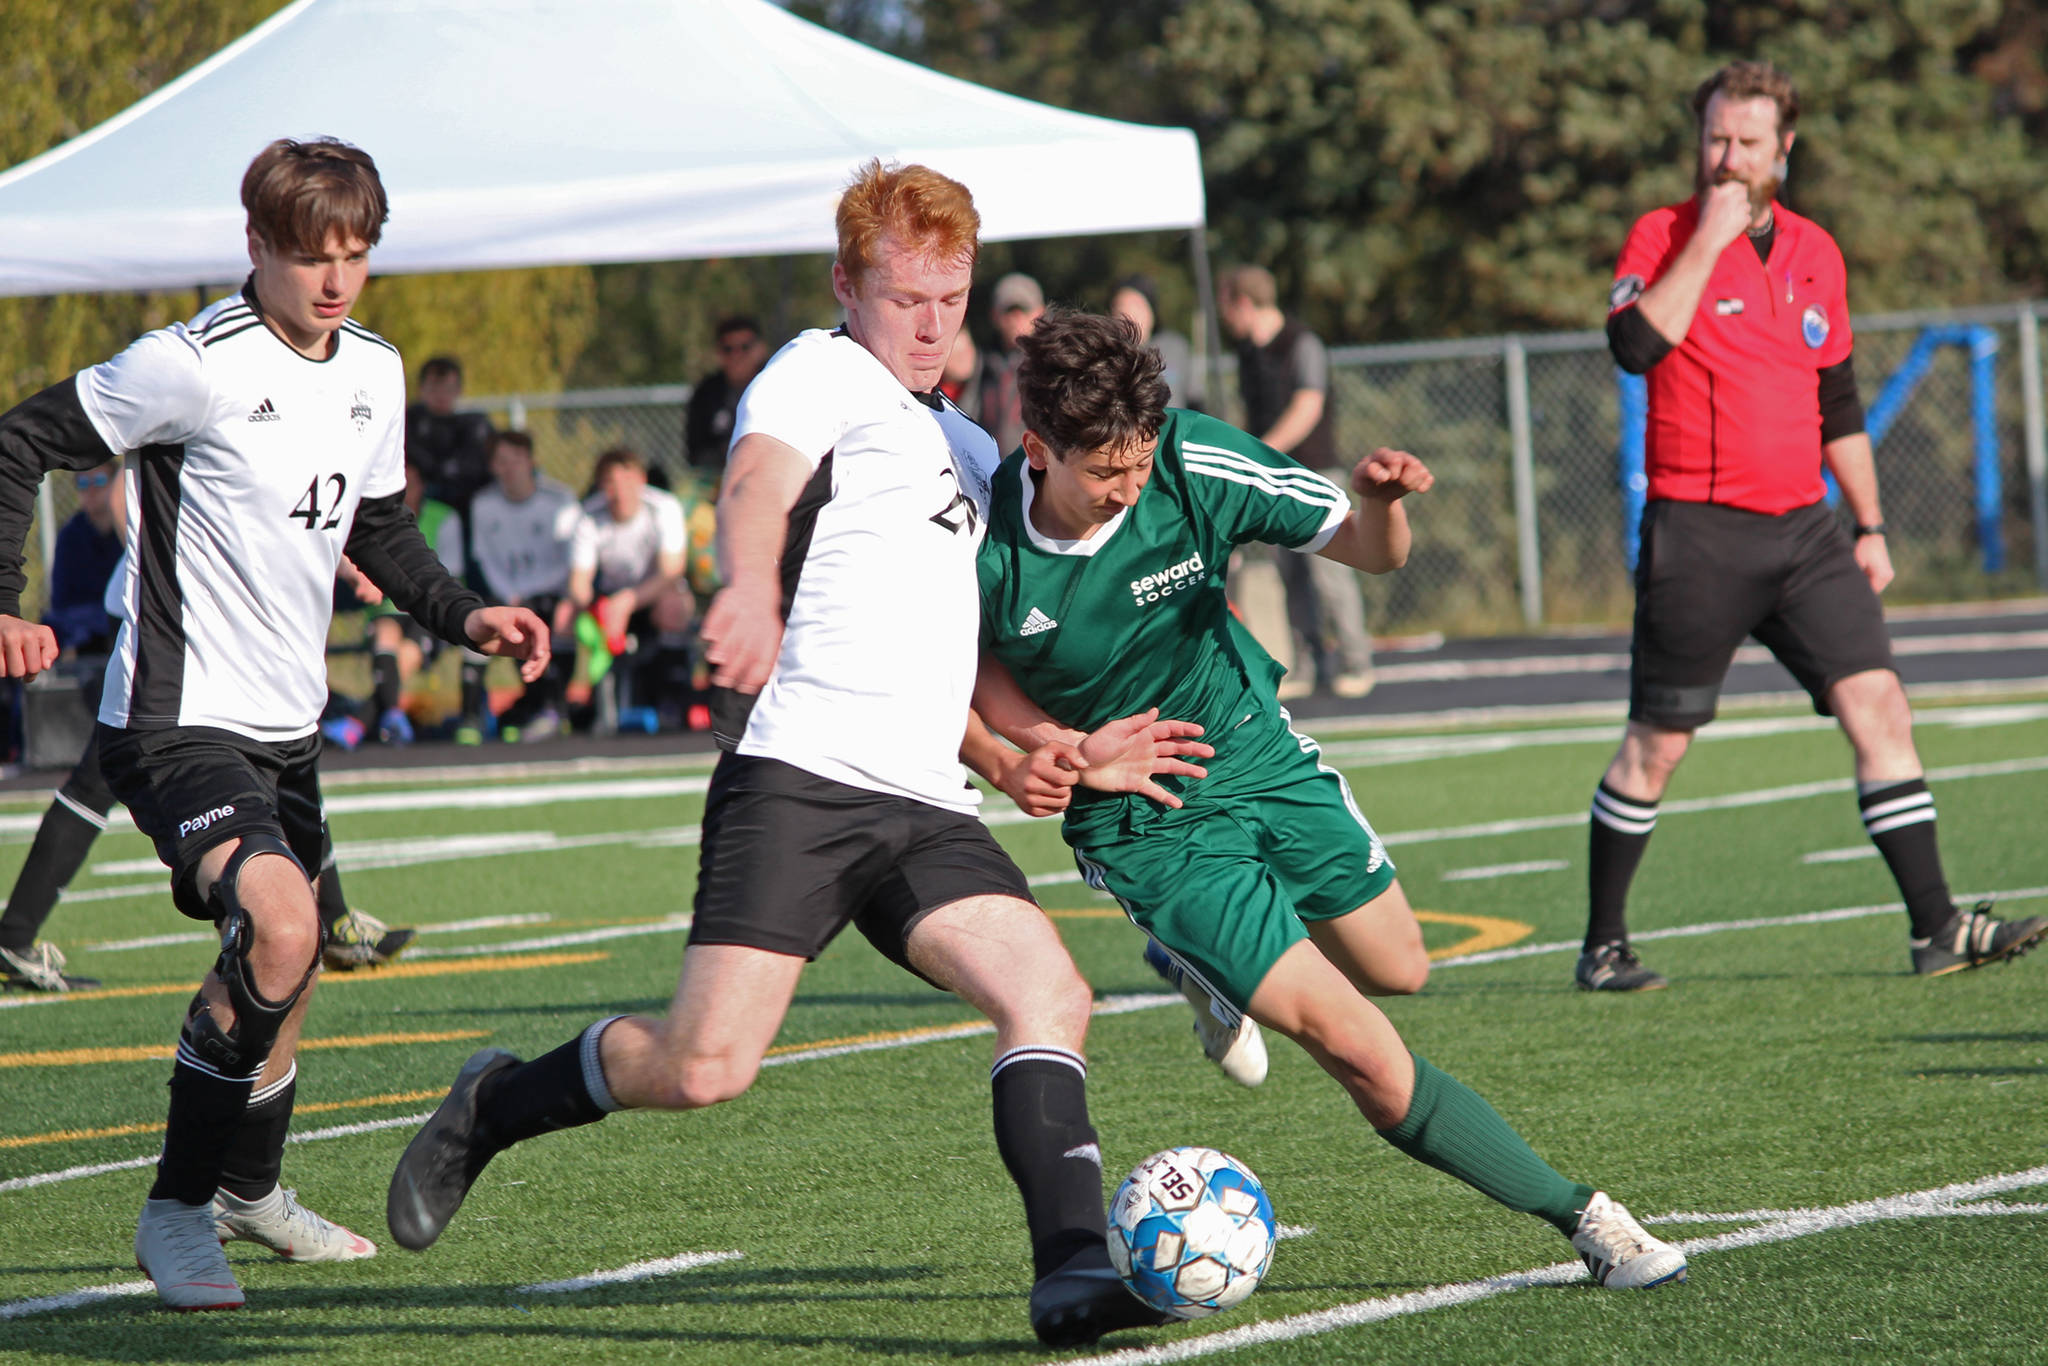 Nikiski's Jace Kornstad (left) and Seward's John Moriarty (right) battle for the ball during the first boys game of the Peninsula Conference Soccer Tournament held Thursday, May 16, 2019 at Homer High School in Homer, Alaska. (Photo by Megan Pacer/Homer News)